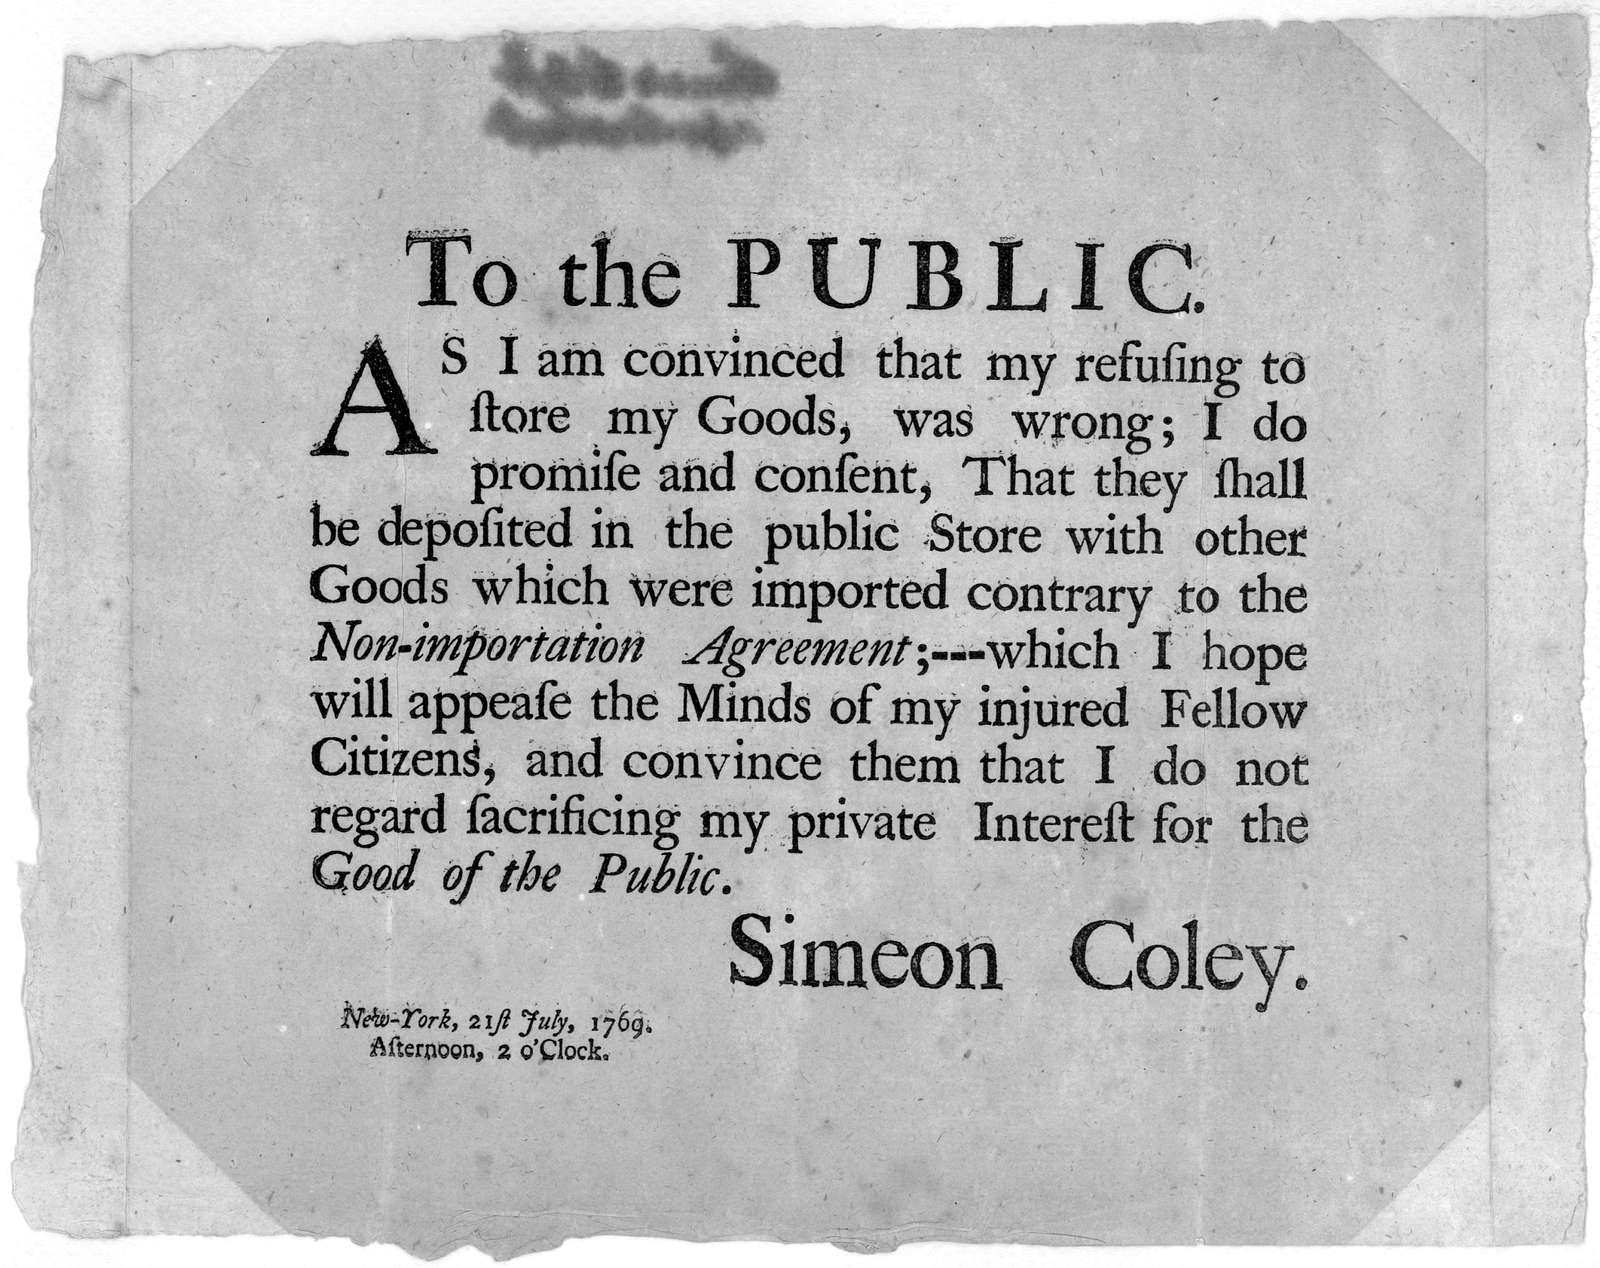 To the public. As I am convinced that my refusing to store my goods, was wrong: I do promise and consent, that they shall be deposited in the public store with other goods which were imported contrary to the non-importation agreement;--- which I